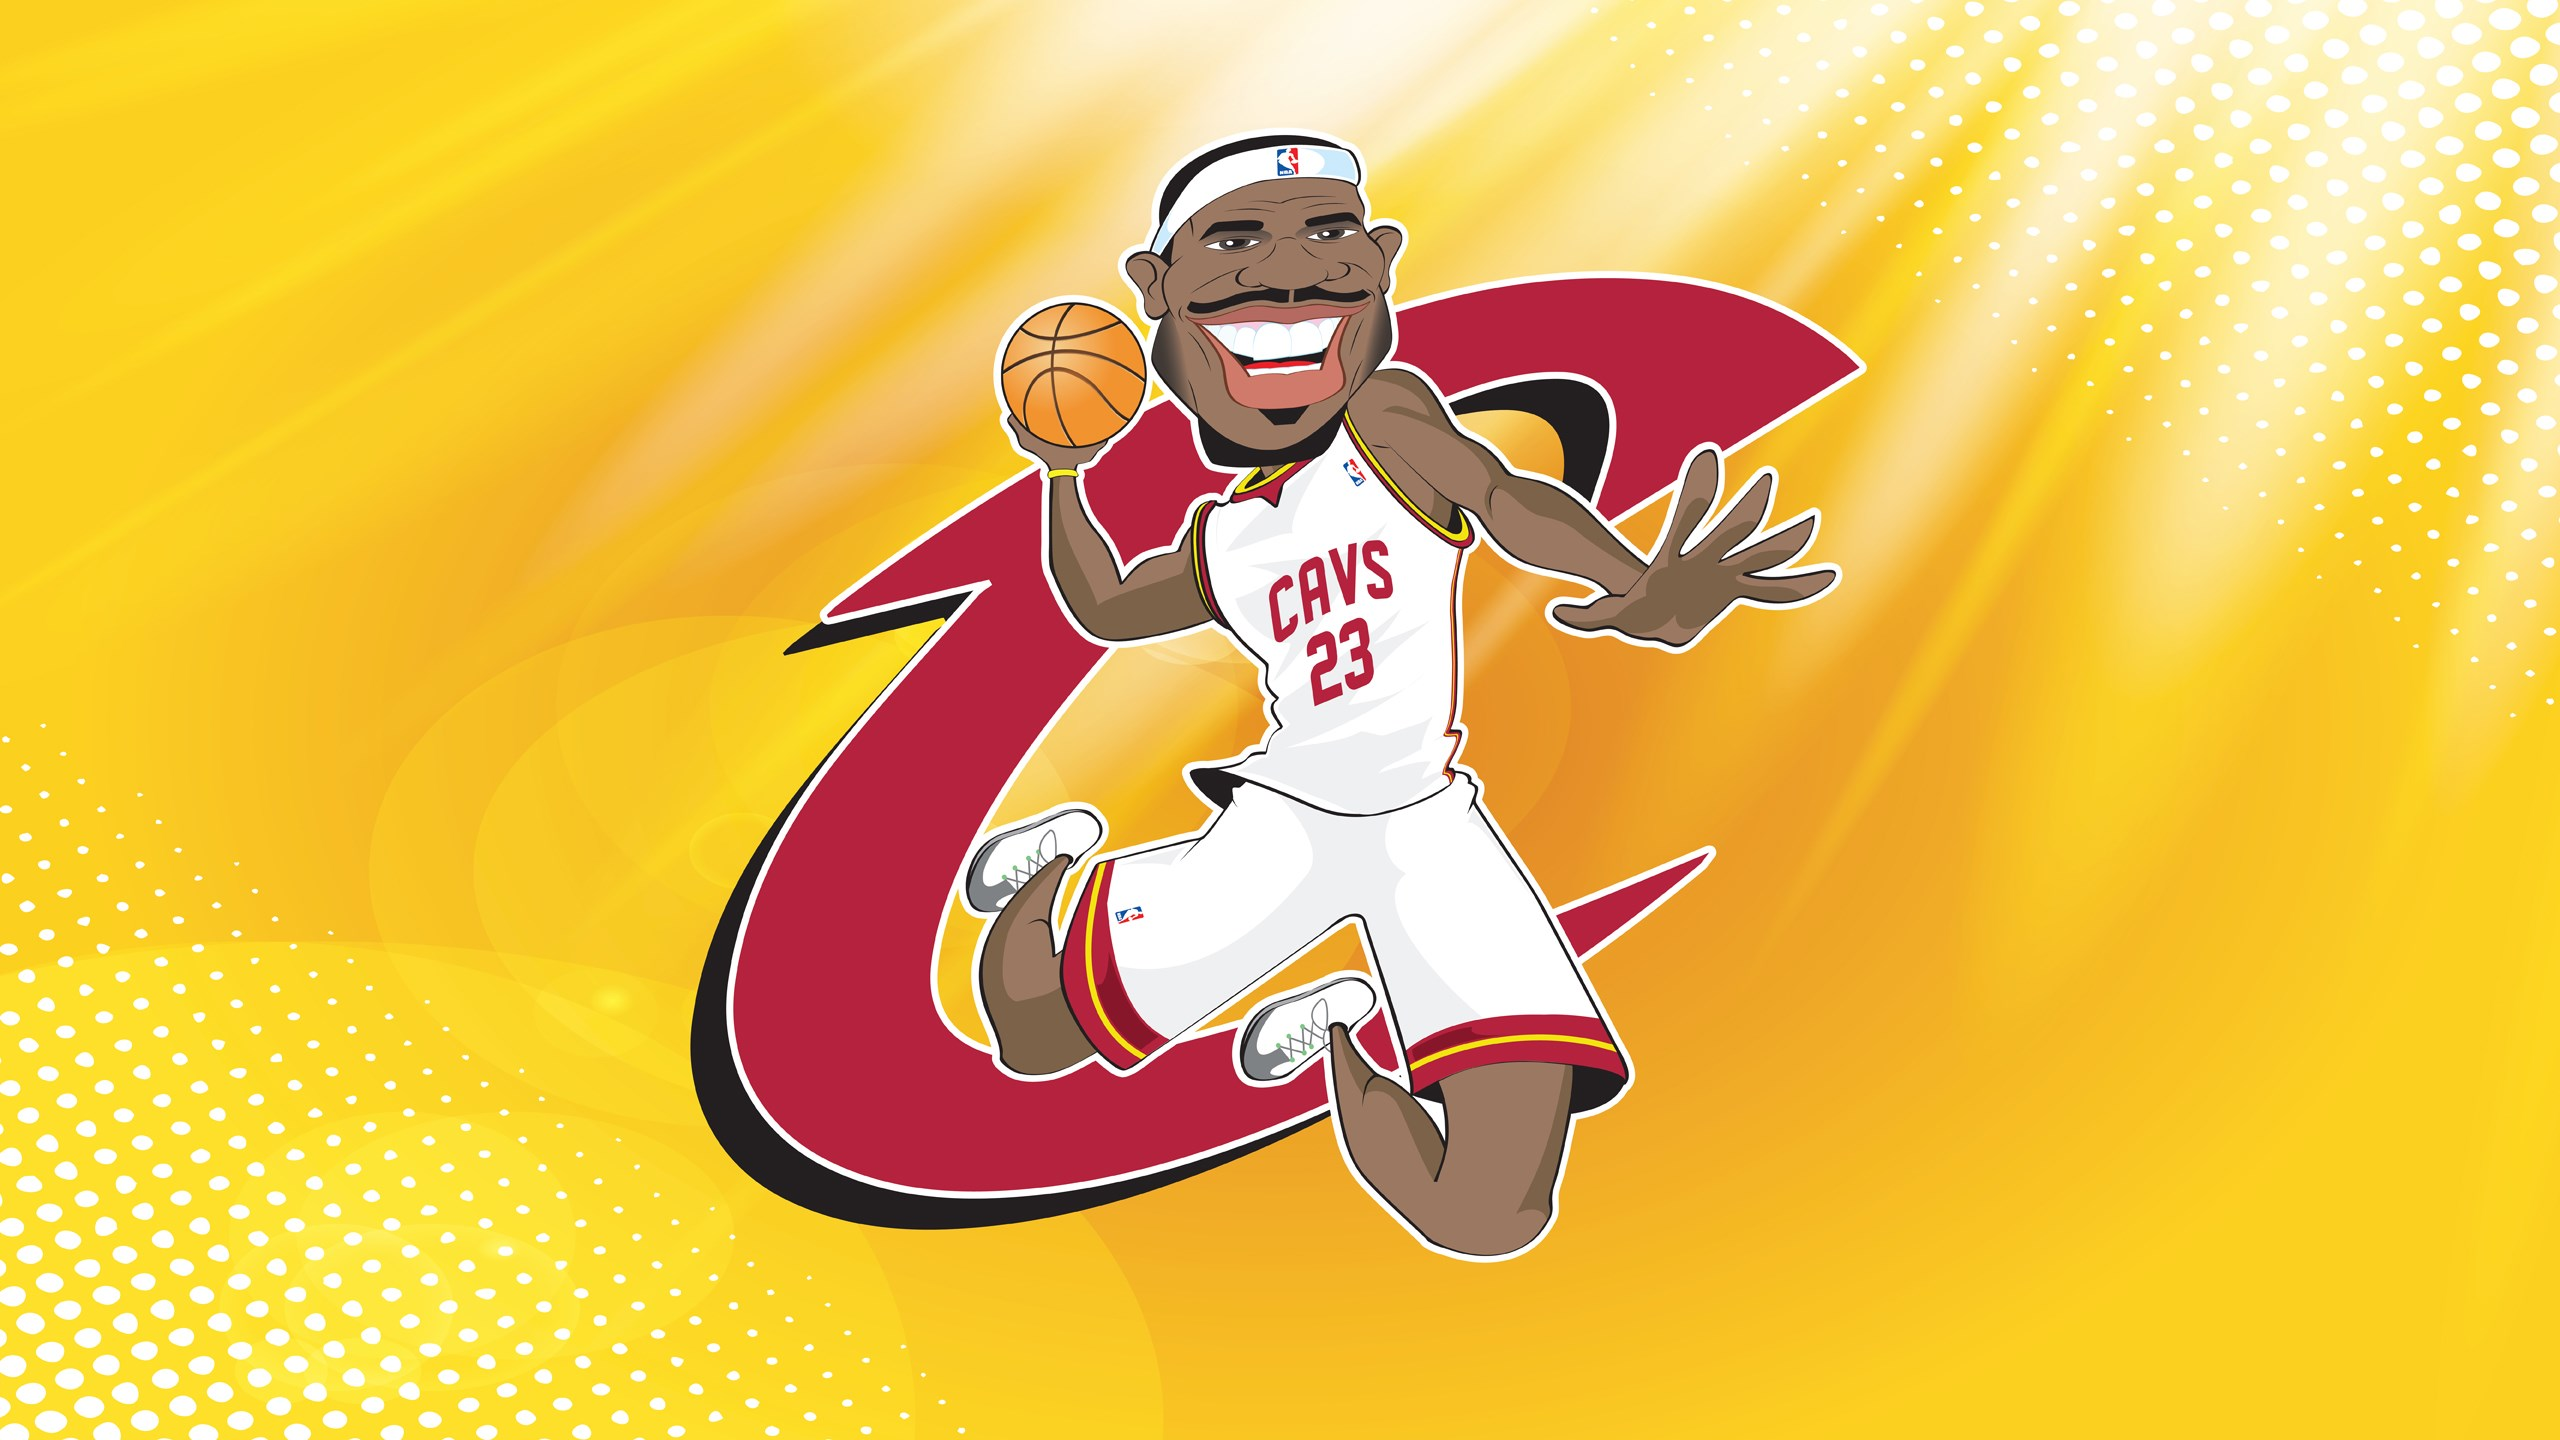 2560x1440 px High Quality lebron james wallpaper by Whitby Fairy for :  pocketfullofgrace clipartlook.com